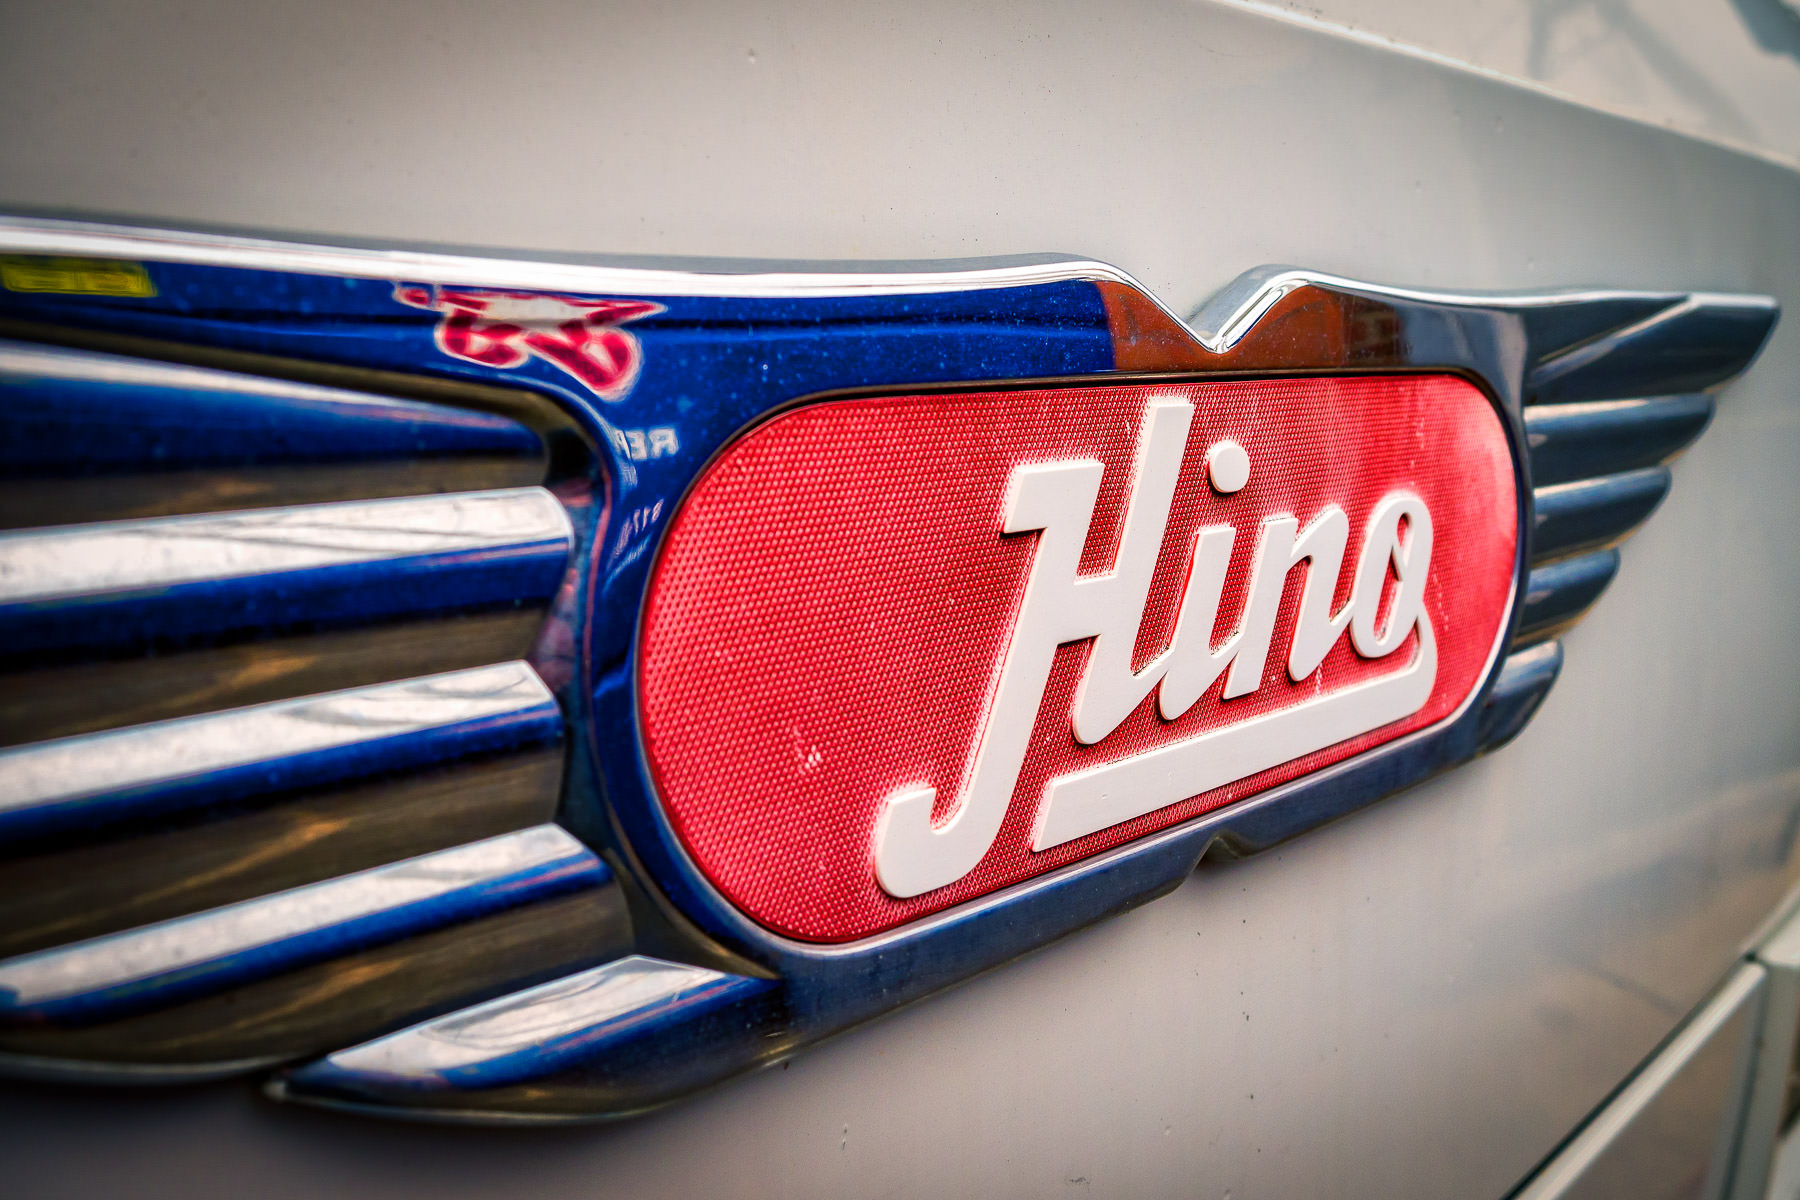 Detail of the manufacturer's nameplate on a Toyota Hino medium-duty truck spotted in Downtown Grapevine, Texas.